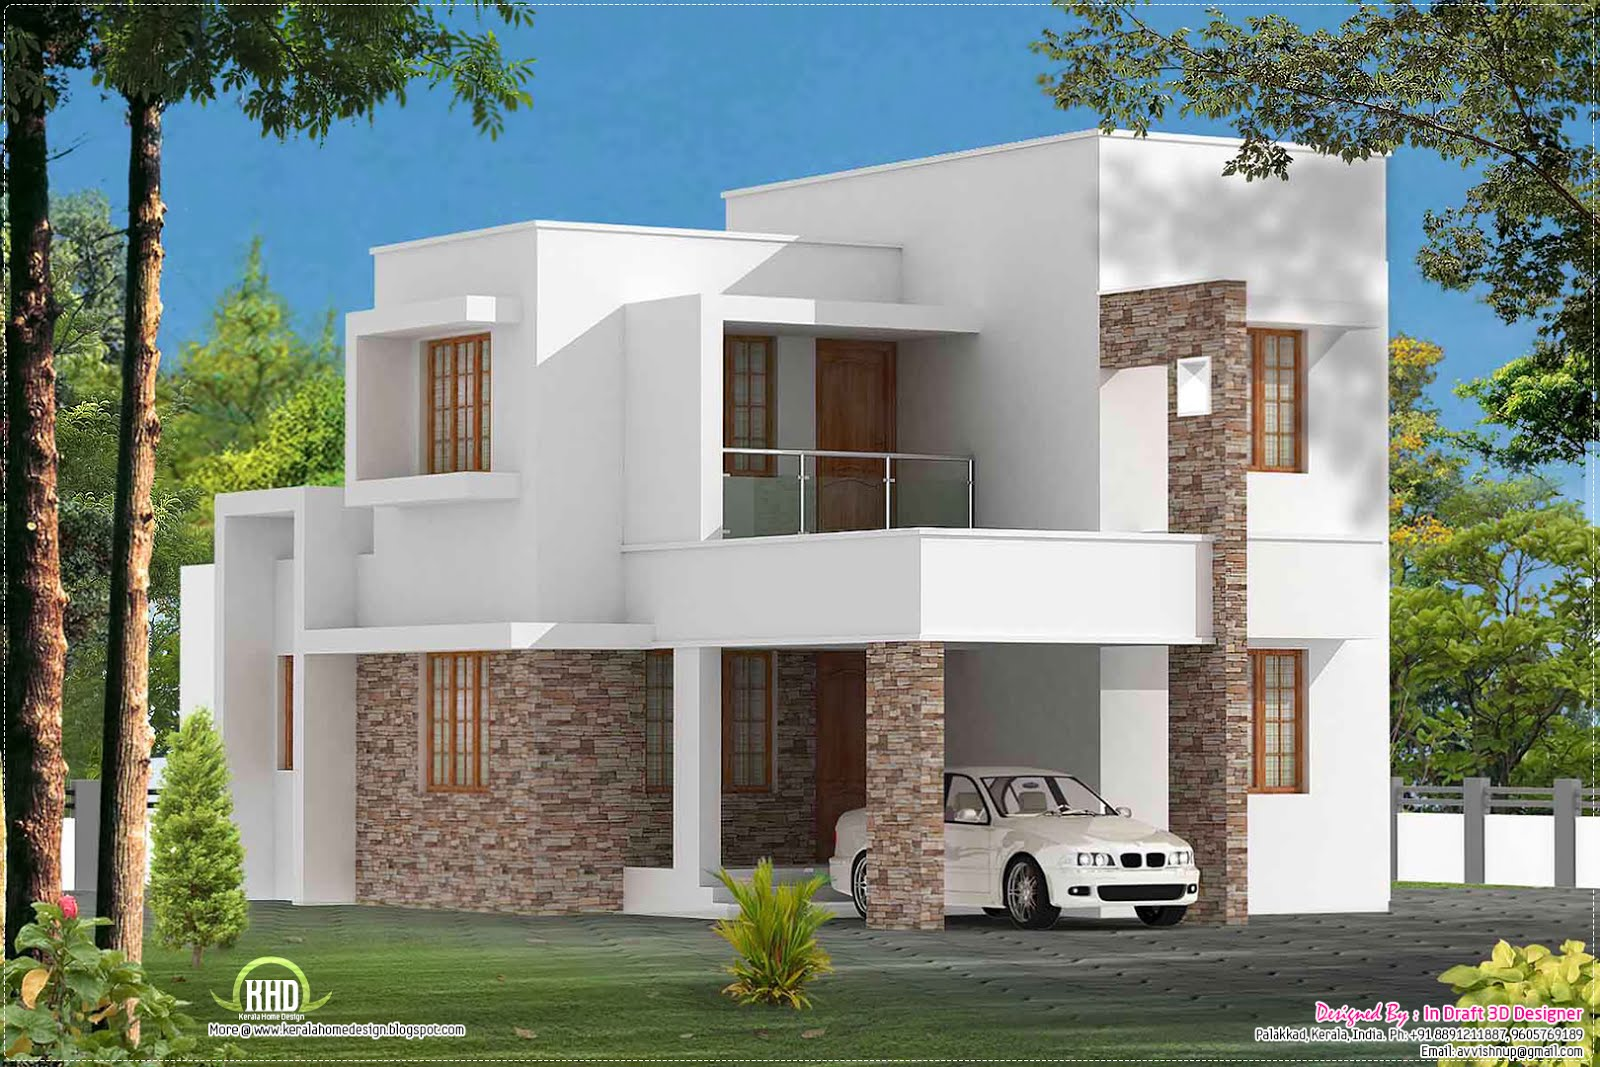 Simple 3 bed room contemporary villa kerala home design and floor plans Easy home design program